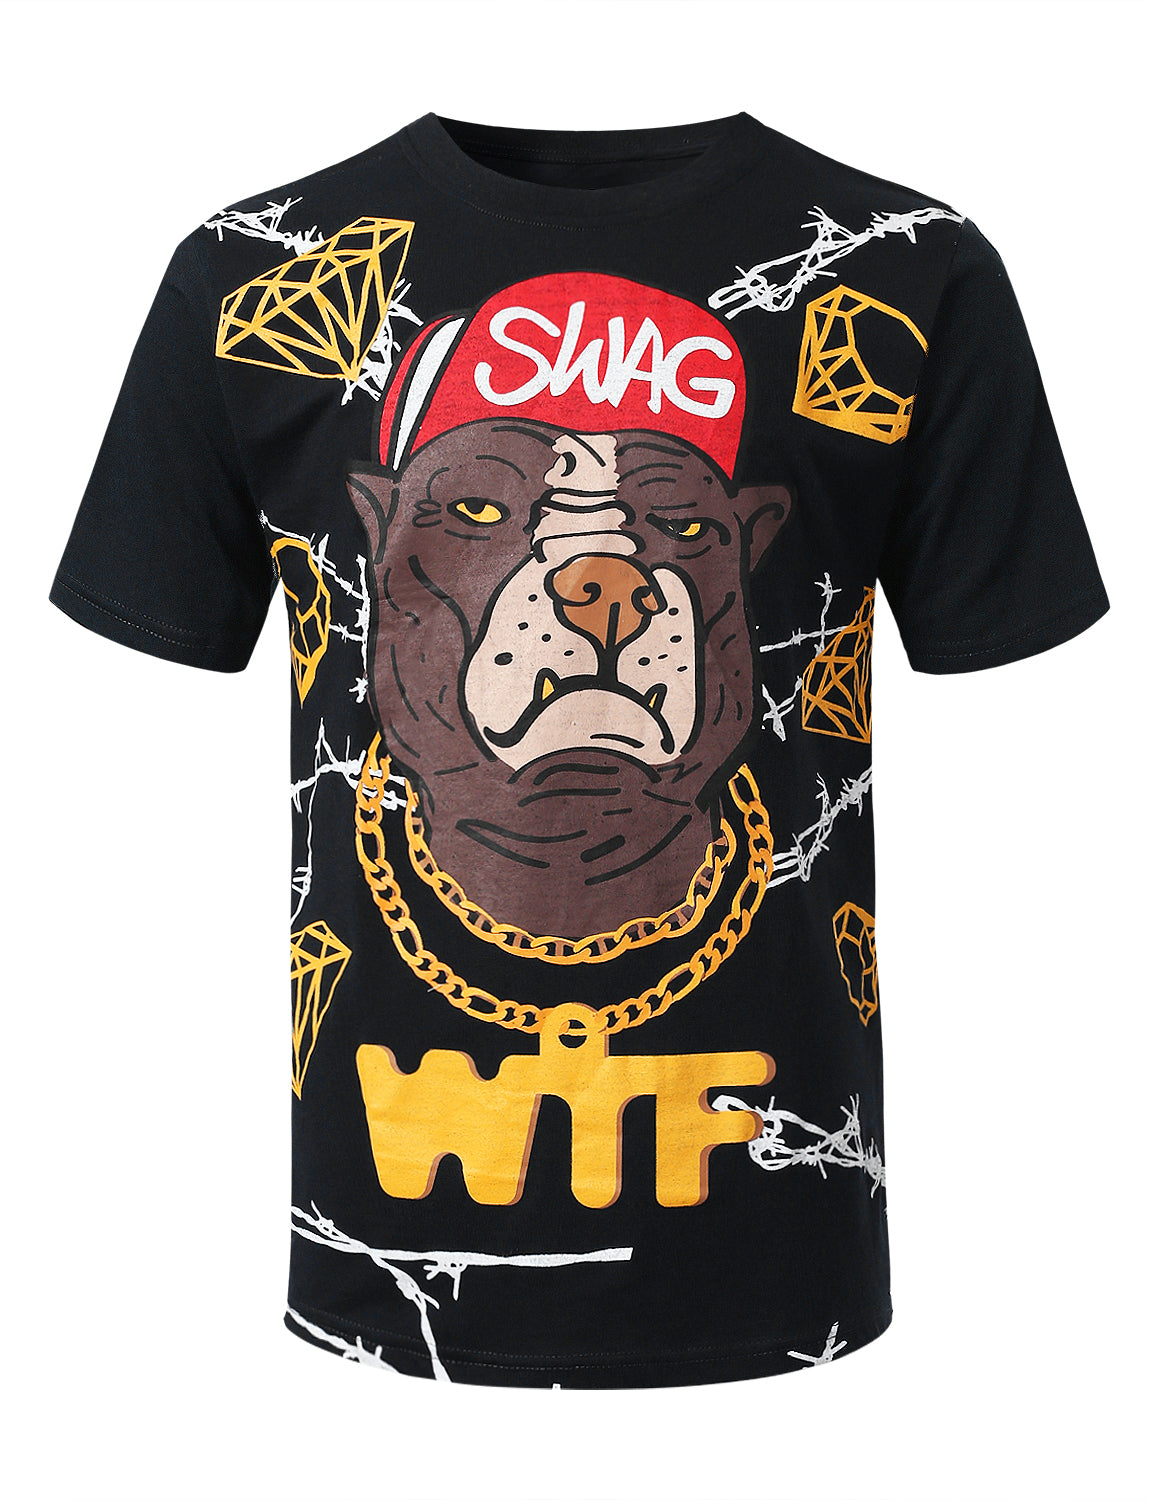 BLACK Swag Graphic Print T-shirt - URBANCREWS